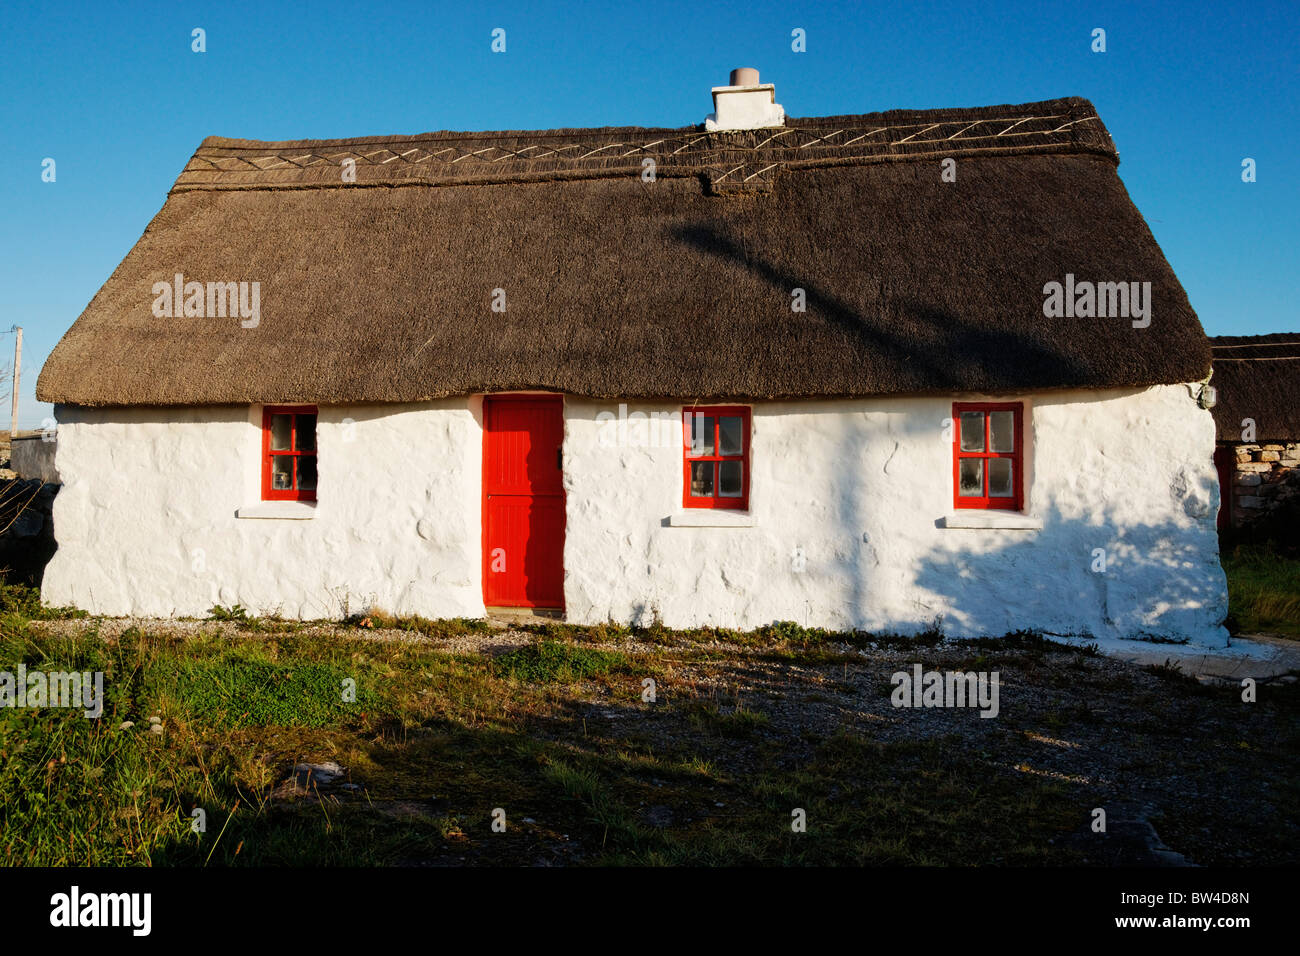 Thatched cottage with red door, near Rossaveel, Connemara, County Galway, Connaught, Ireland. - Stock Image